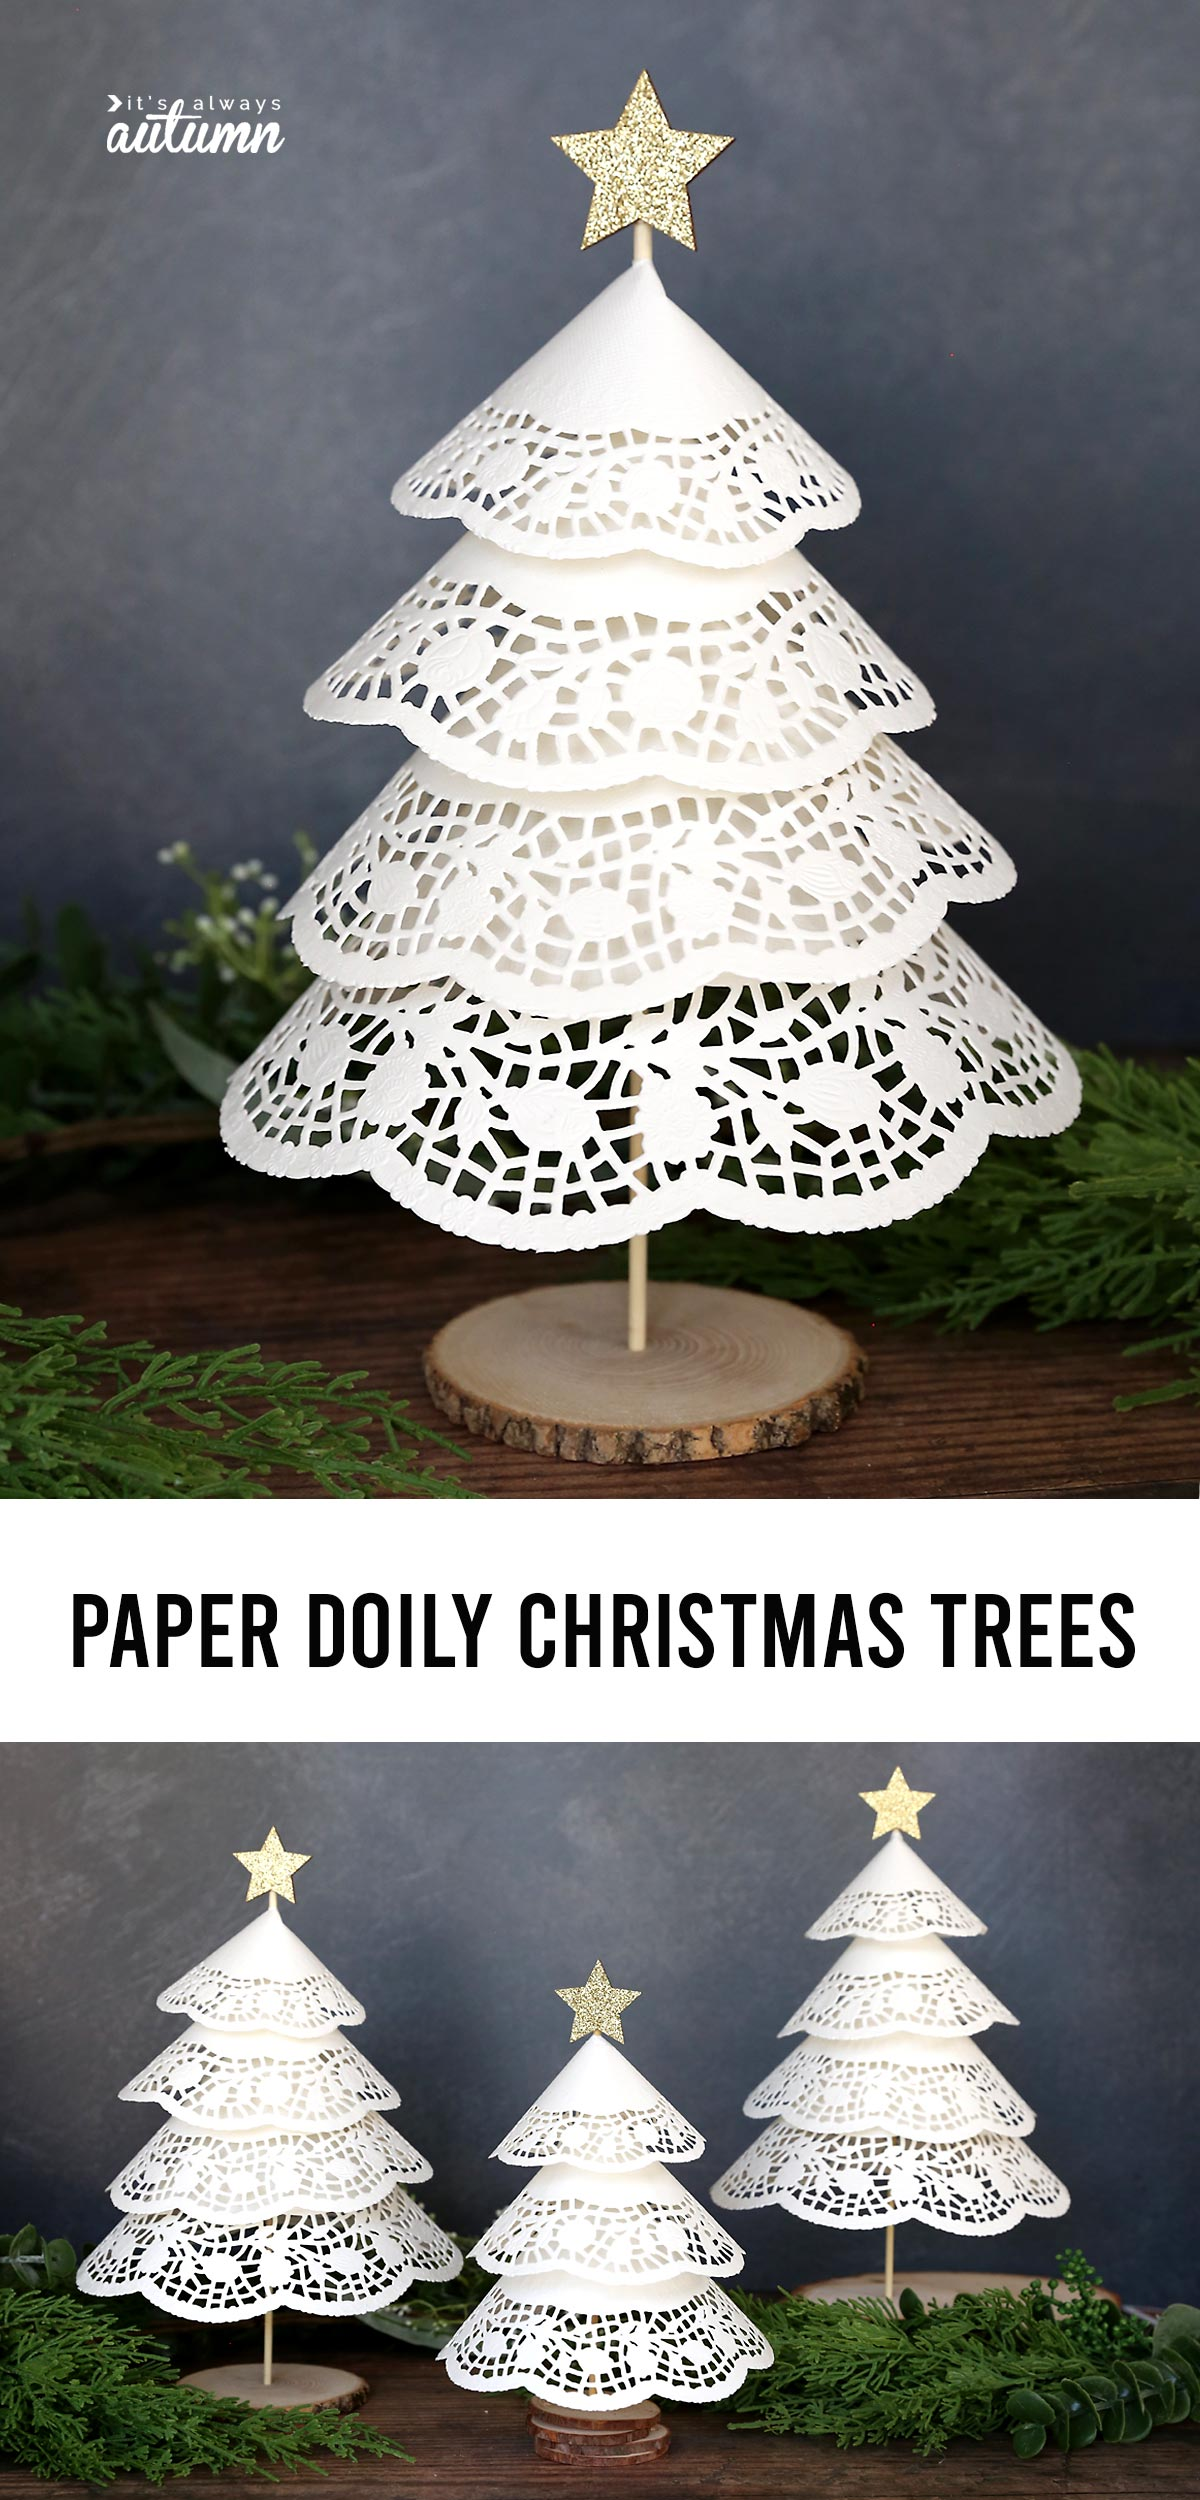 Make Paper Doily Christmas Trees W Dollar Store Supplies It S Always Autumn